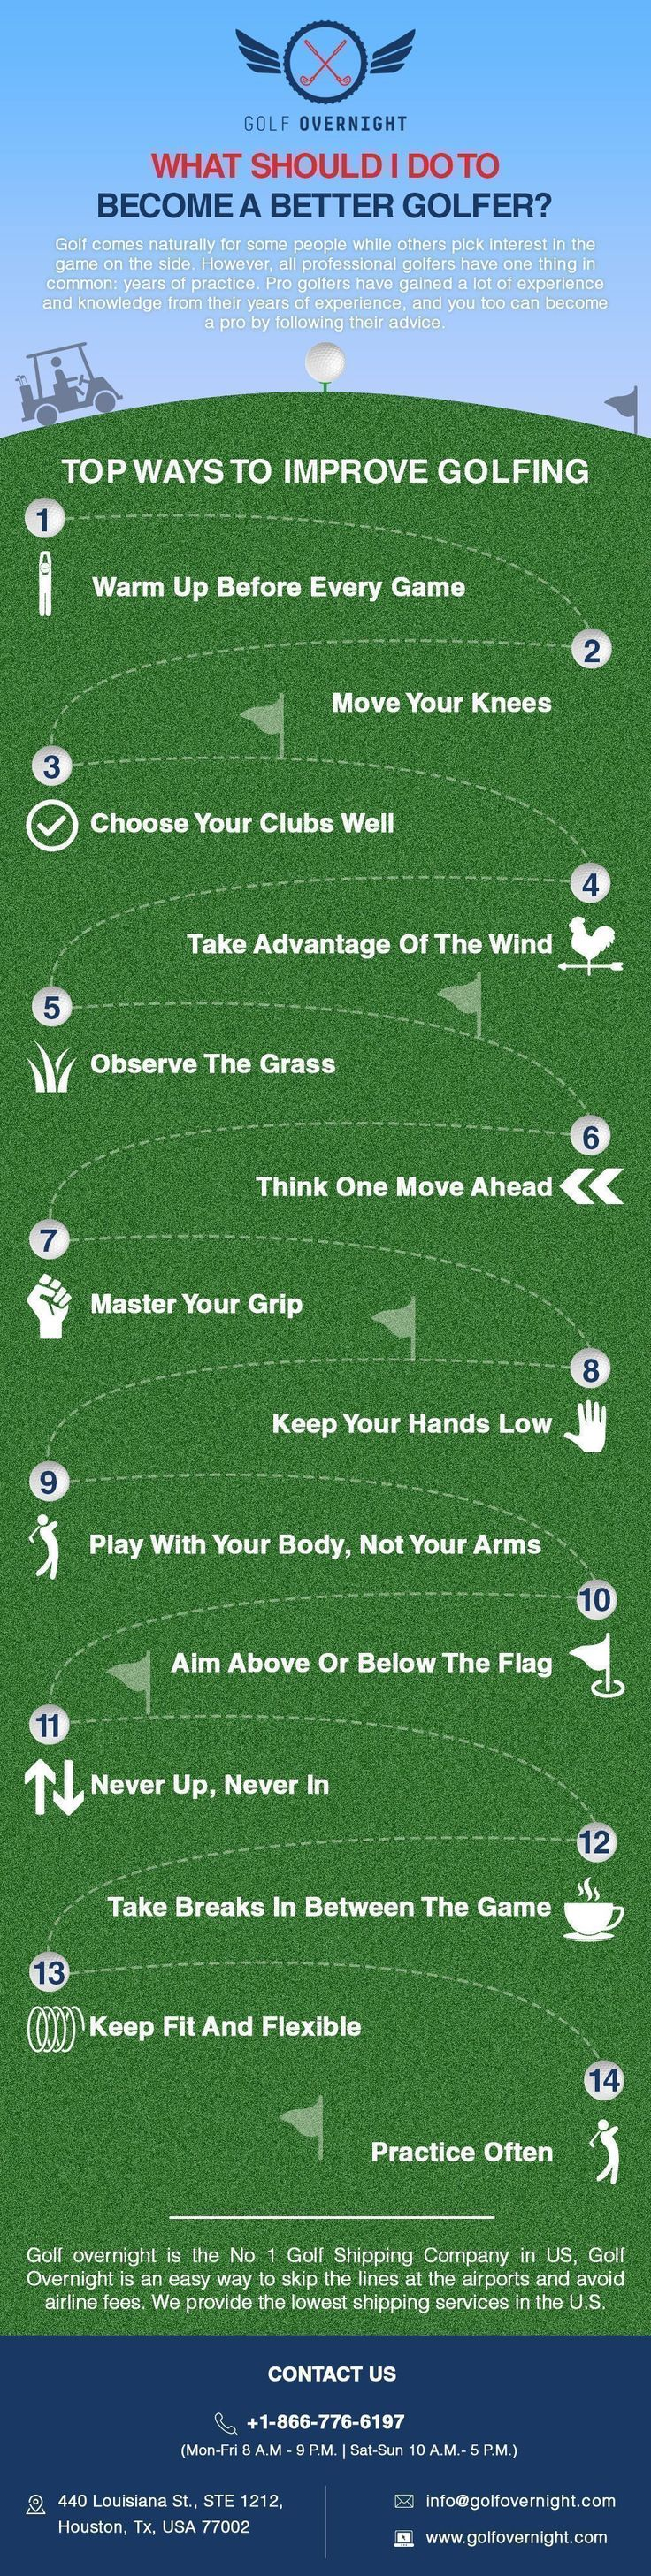 Golf is the Excellent and challenging game to play. But most of the beginners and expert don't know how can become better Golfer in Golf game, if you want to improve your golf skills. So here are the Top expert tips by Golf Overnight. Follow next time when you play Golf next time in you stance. #golftips #playgolf